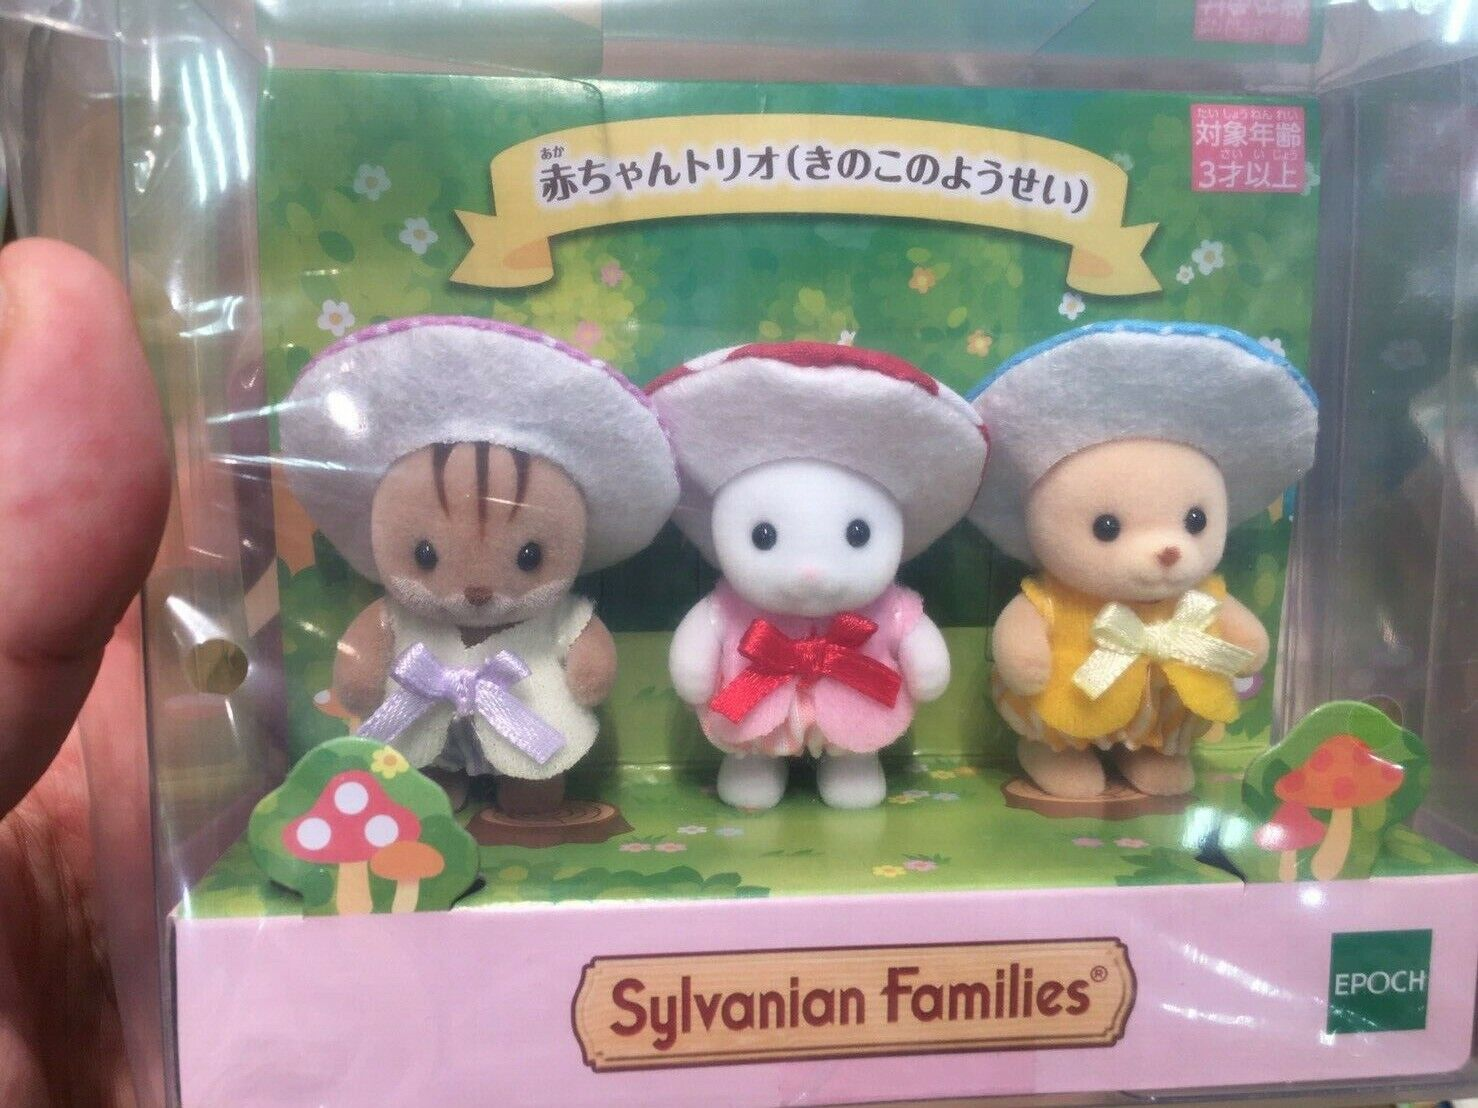 pianoforte serie 4 PARTY EPOCH NUOVO Sylvanian FAMILIES 5463 cani BABY M